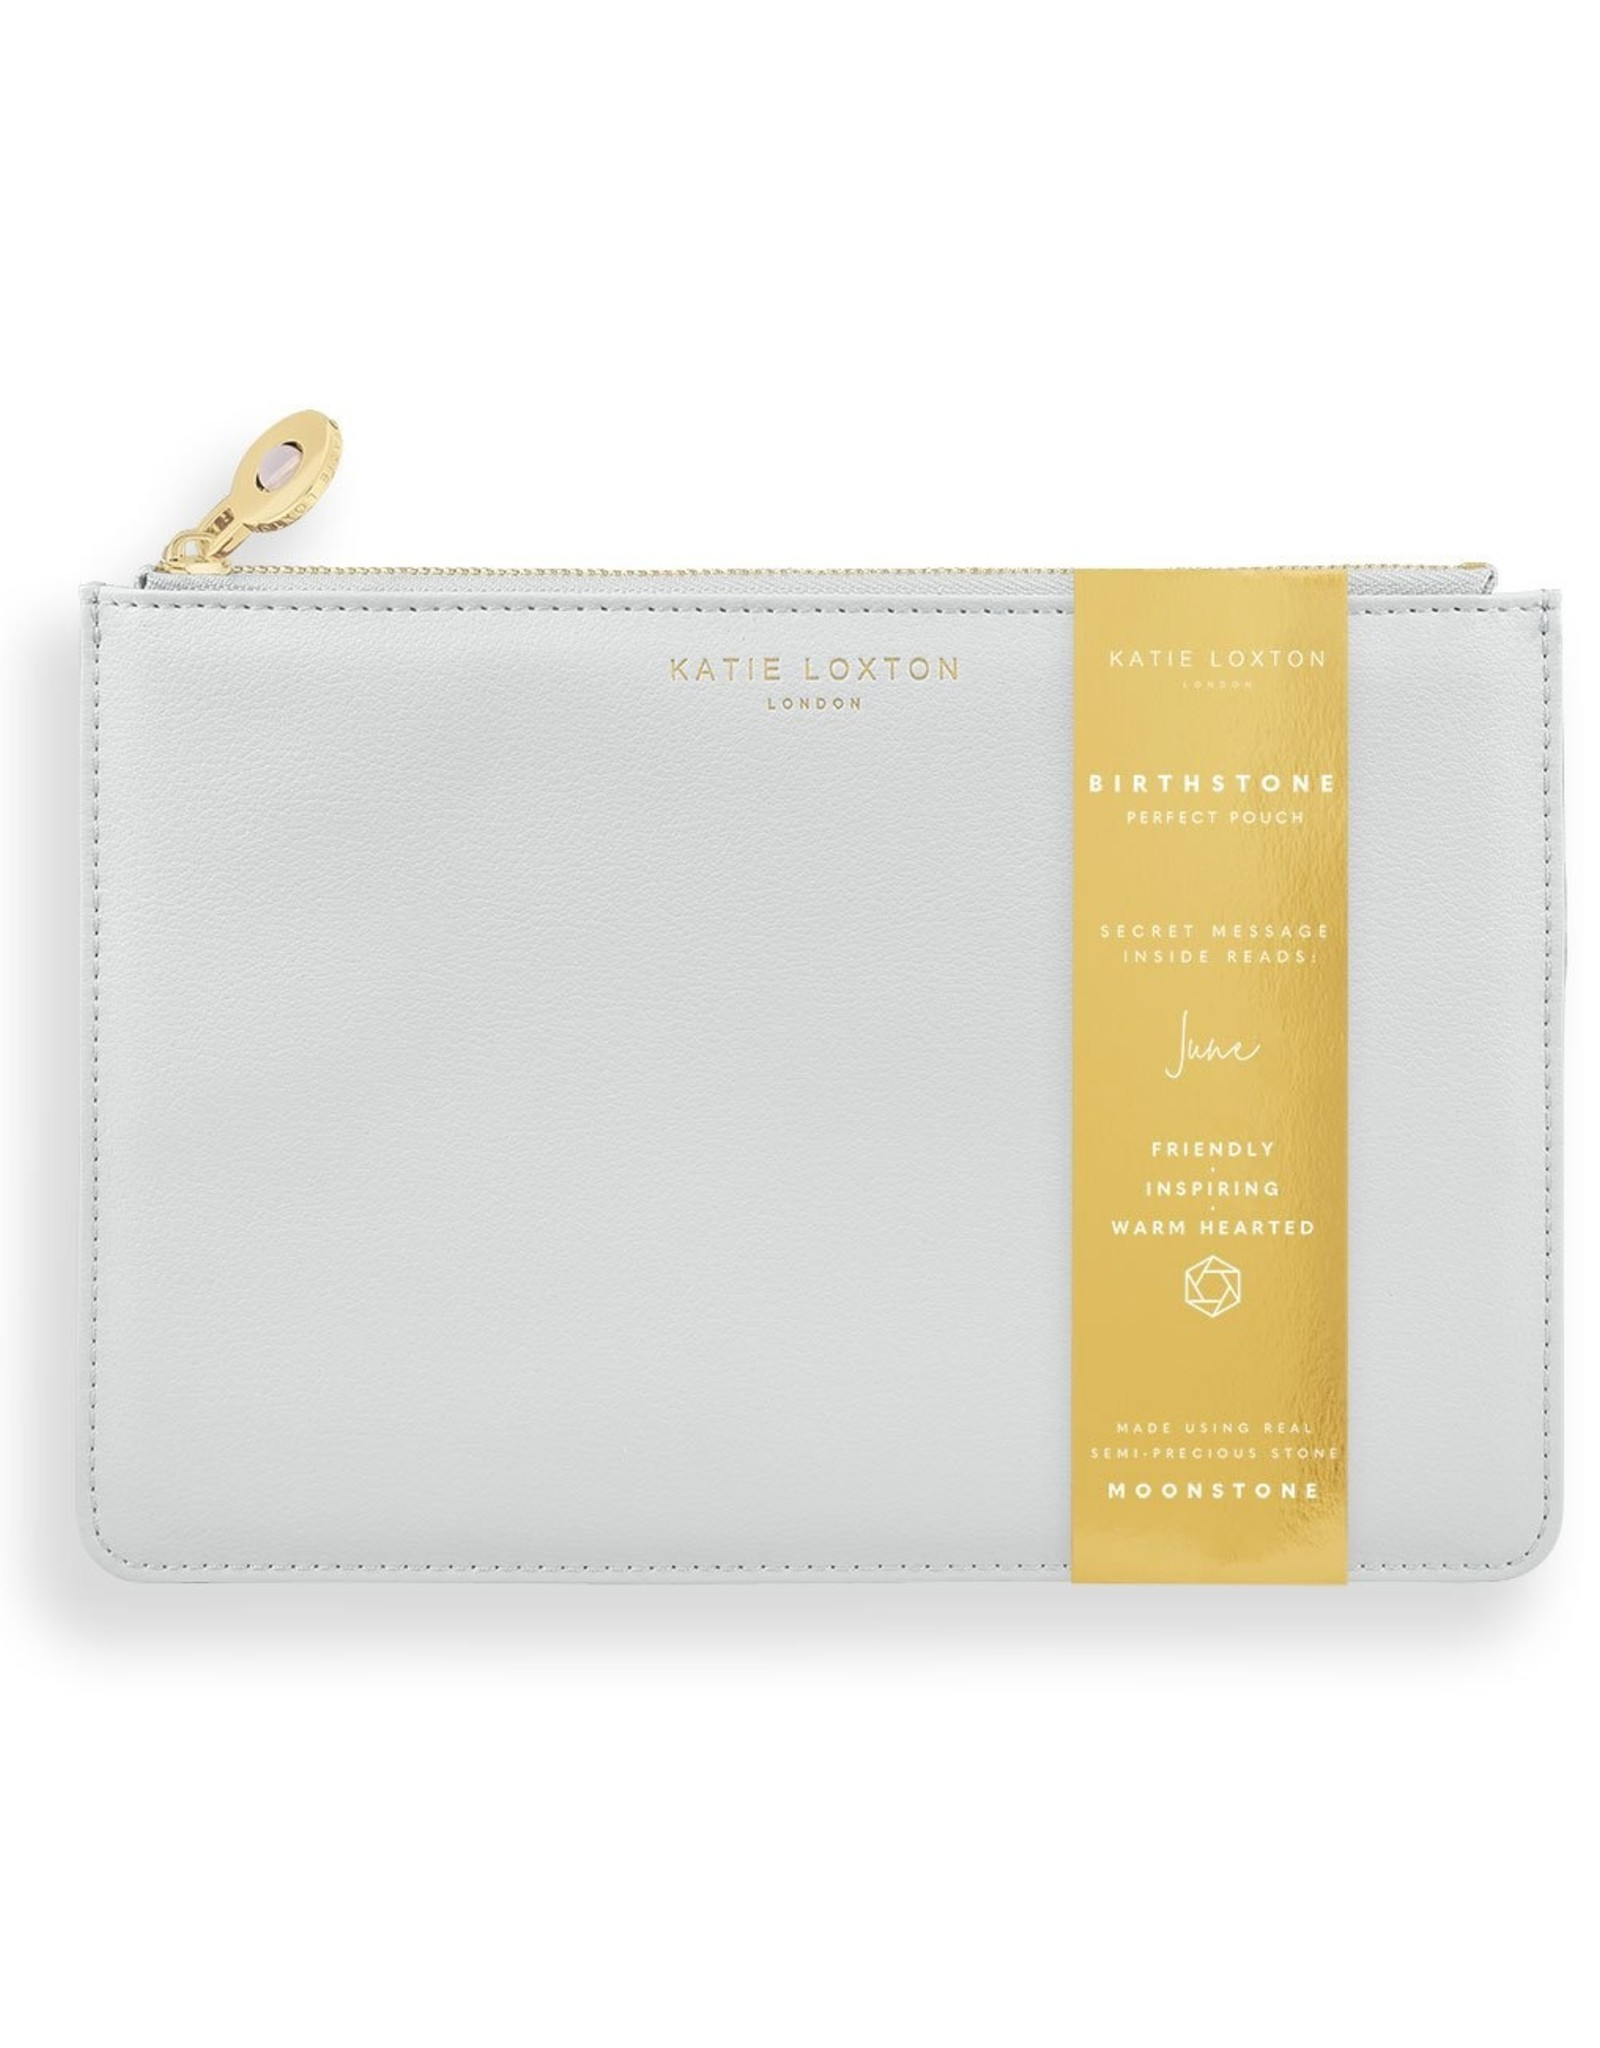 Katie Loxton The Birthstone Perfect Pouch June